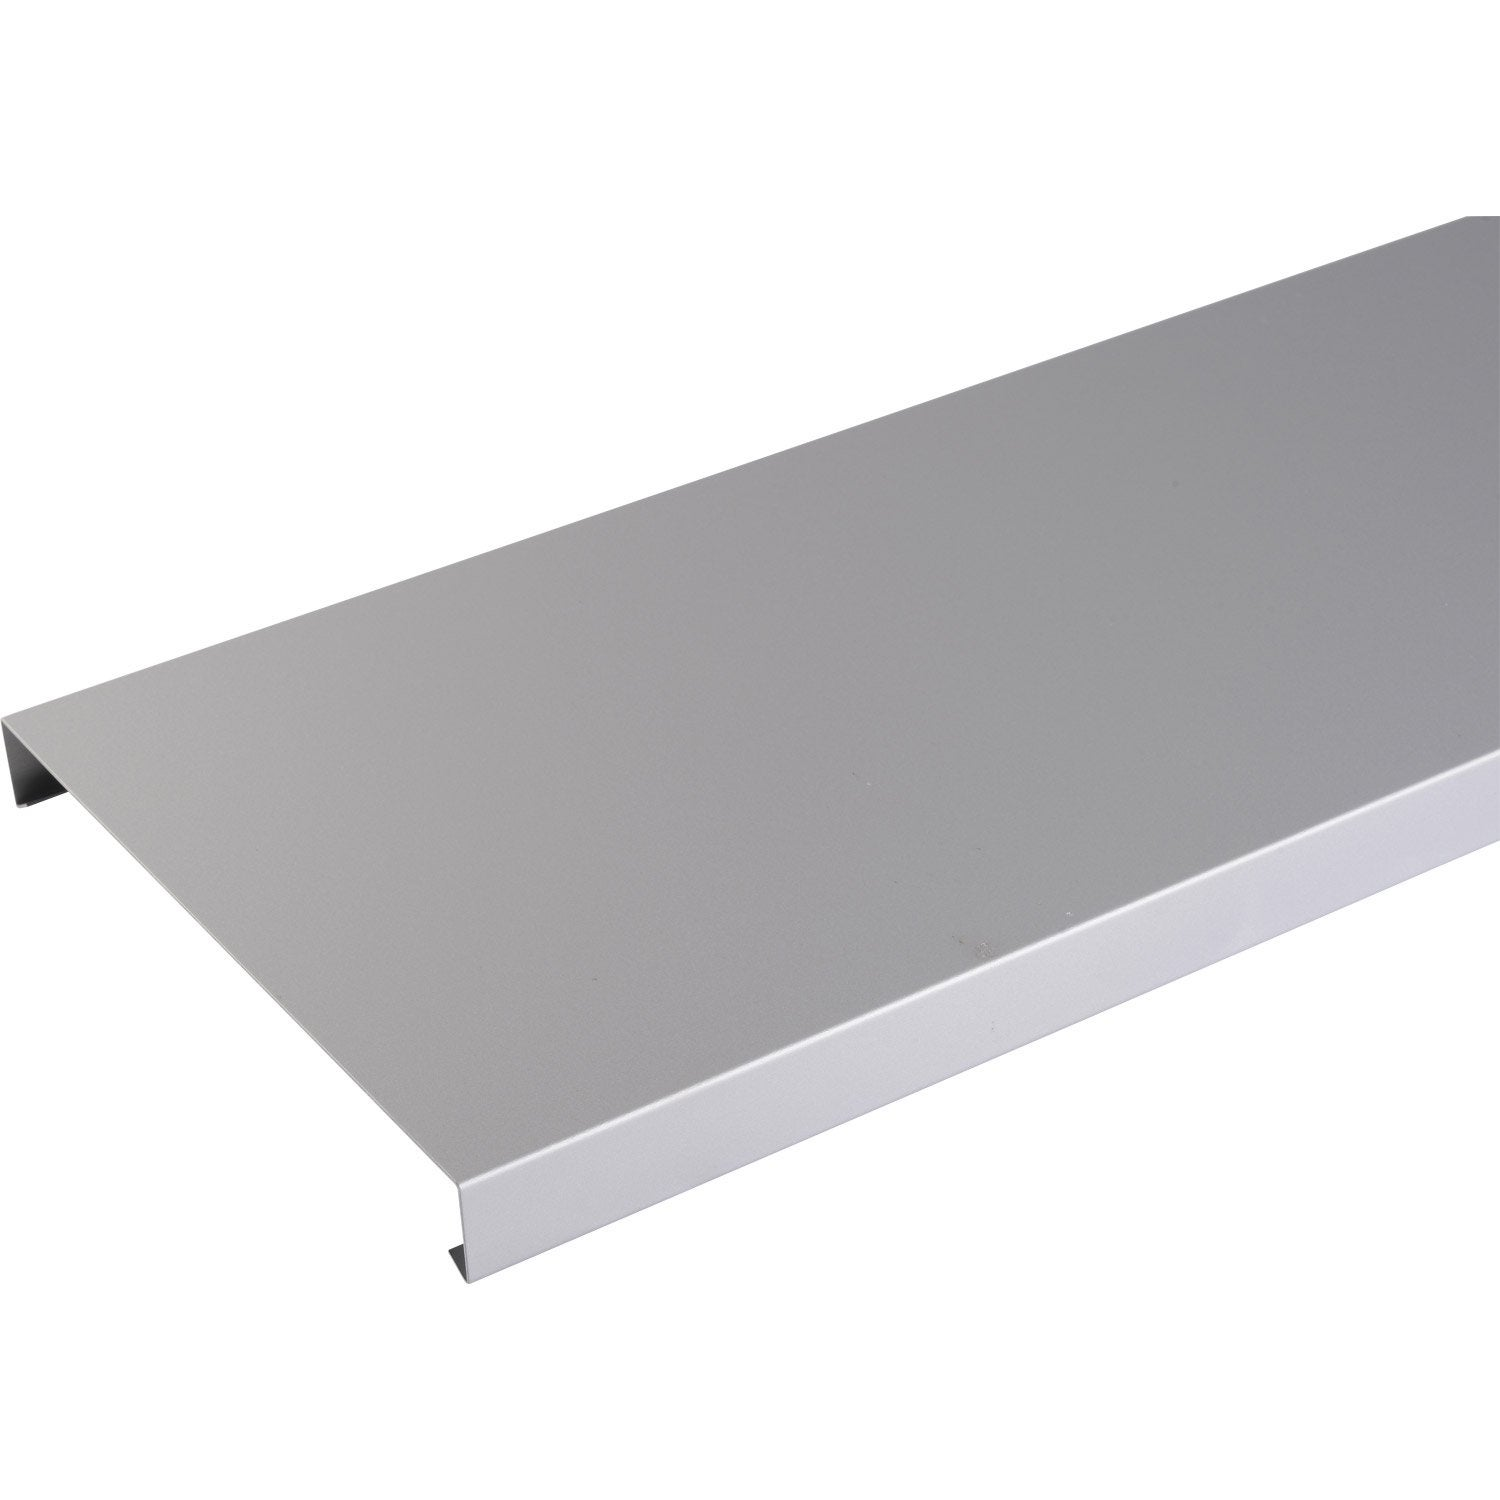 Couvertine Beton Gris Anthracite Leroy Merlin